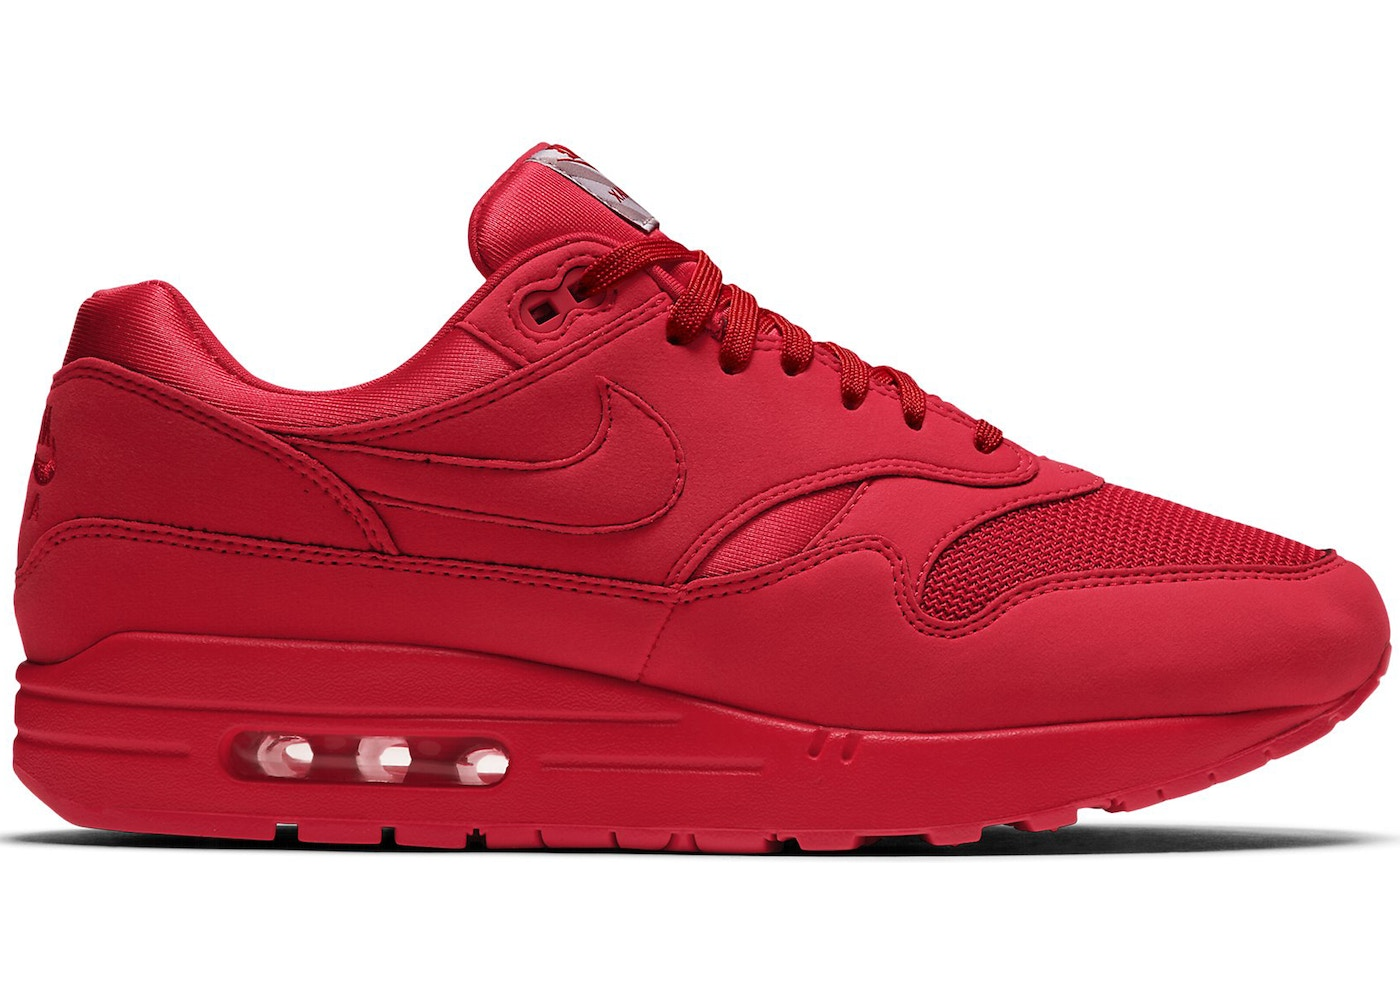 finest selection 7052c b970c Air Max 1 Tonal Red - 875844-600